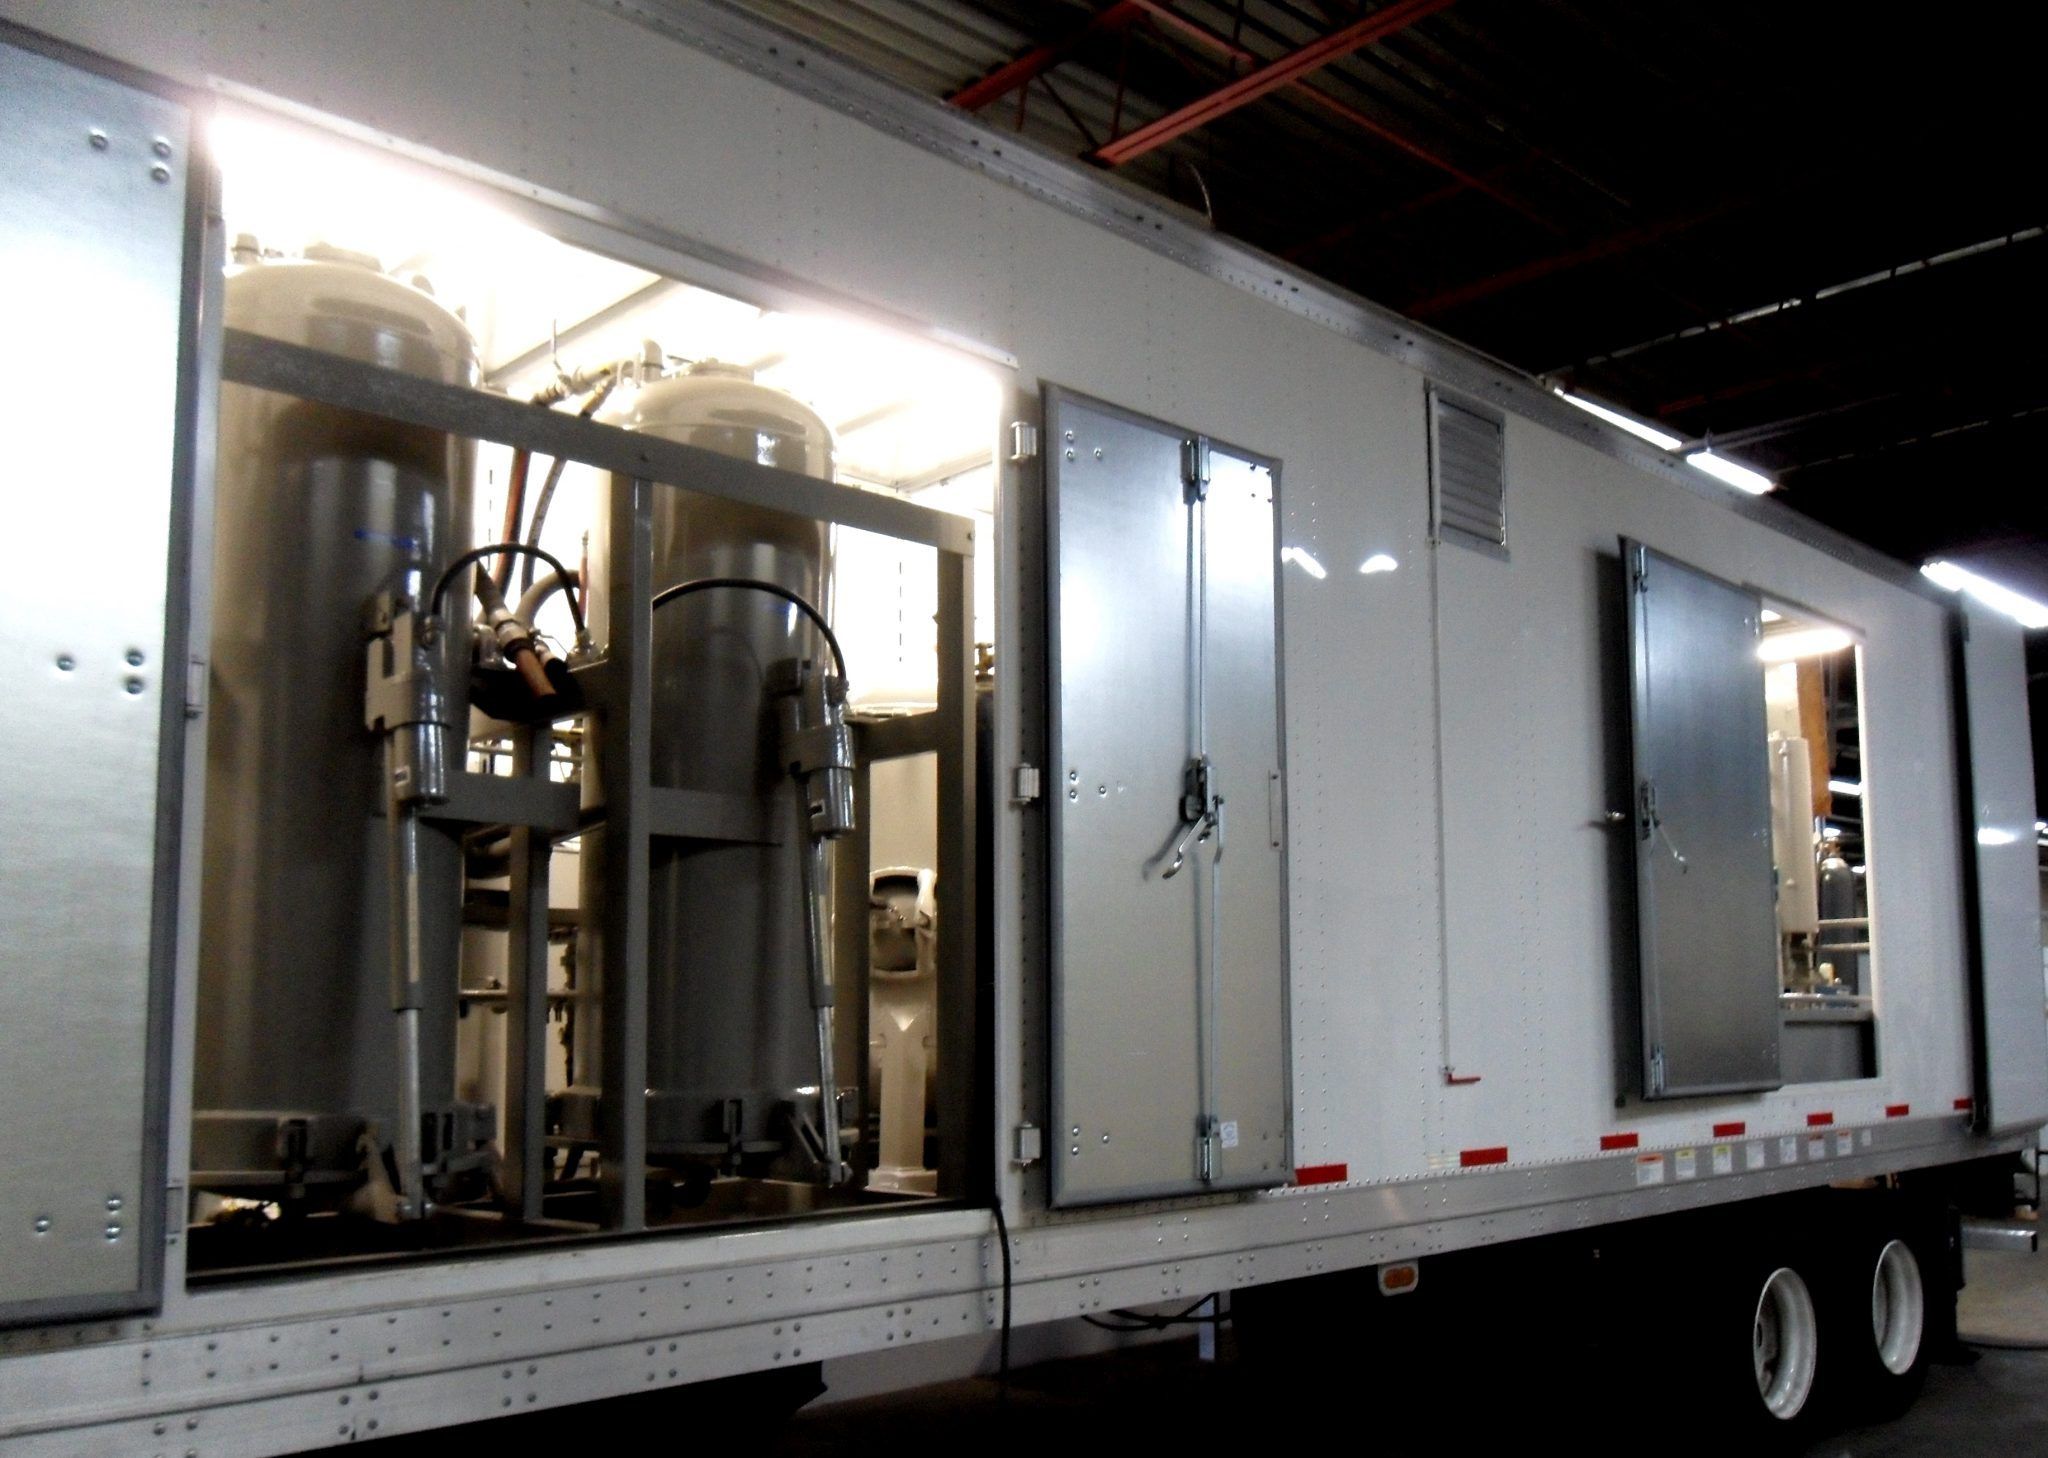 PCB removal system trailer 2